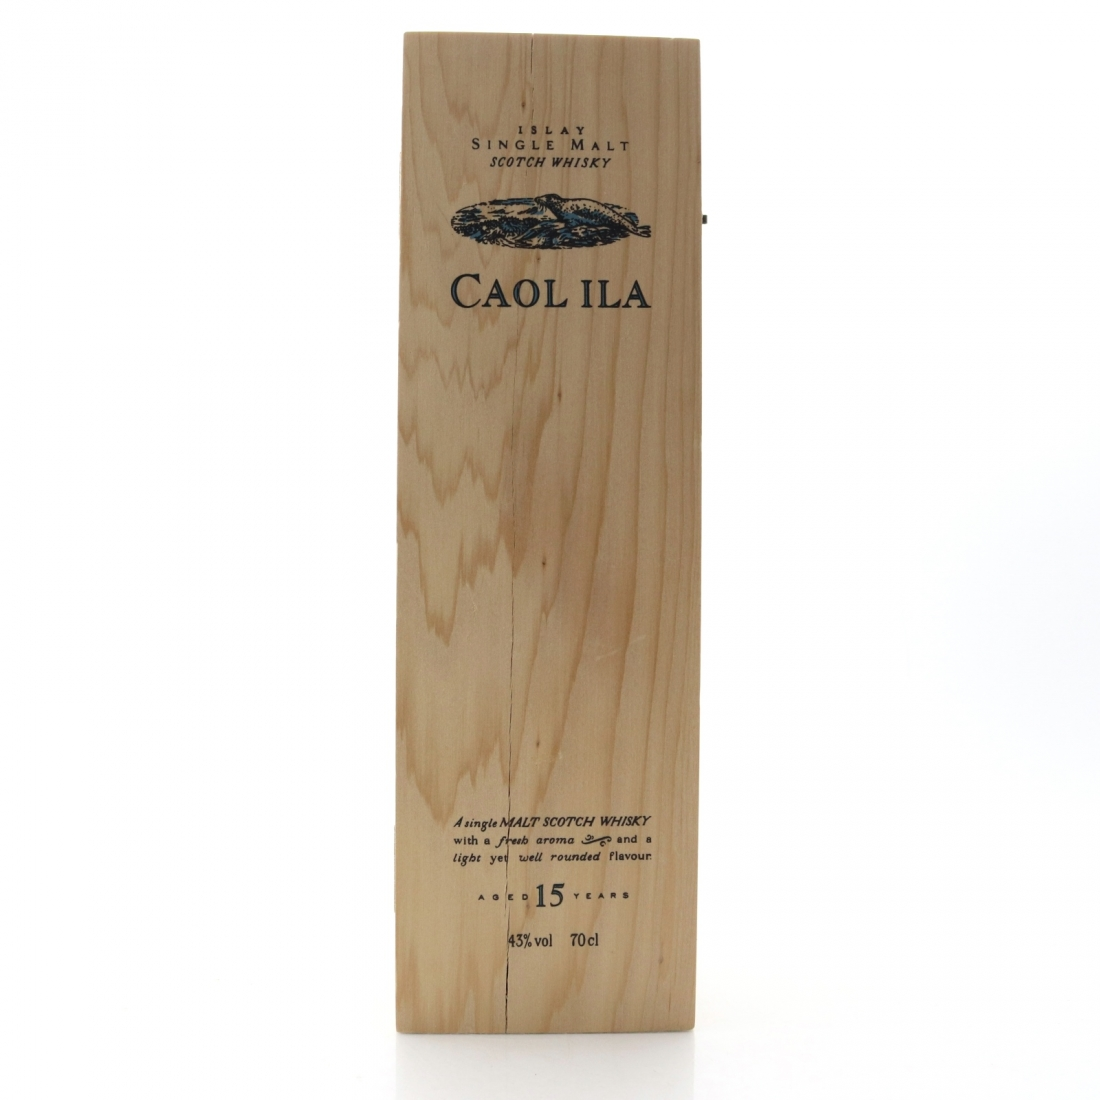 Caol Ila 15 Year Old Flora and Fauna / EMPTY BOX